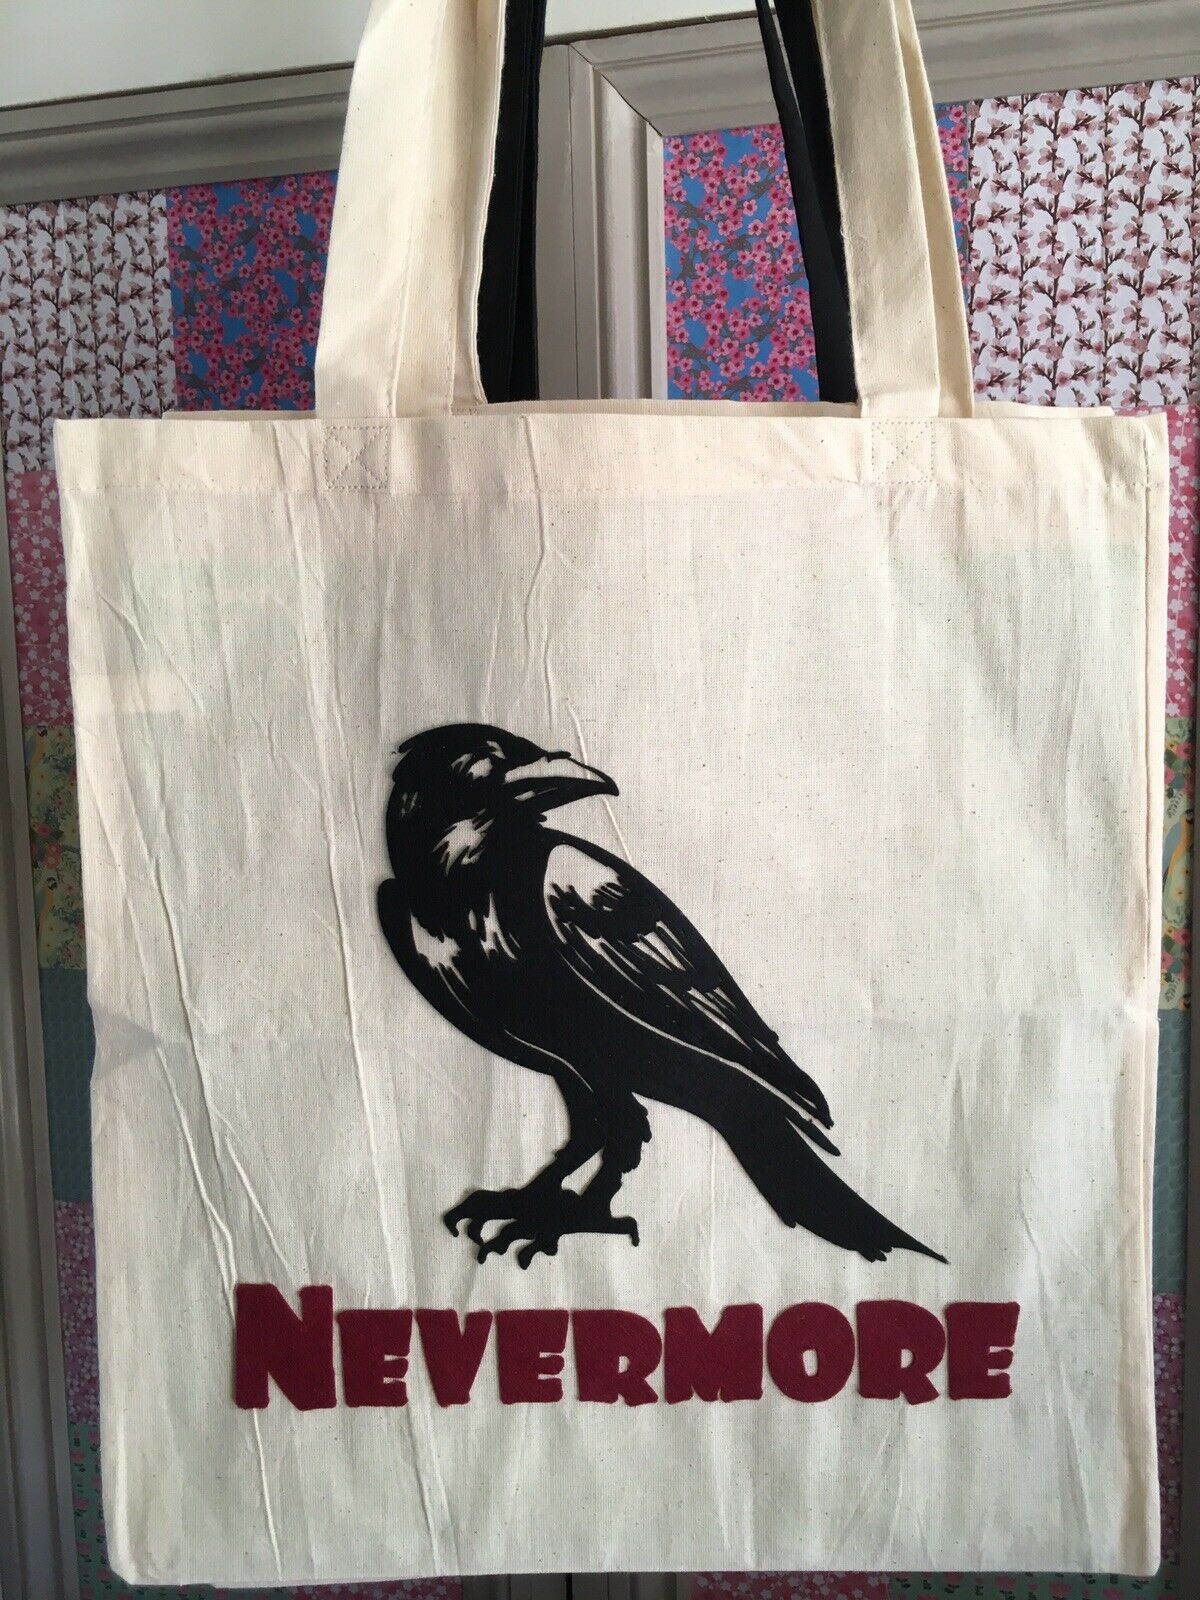 'The Raven' By Edgar Allan Poe - Nevermore Tote Bag Handmade Horror Classic Gift